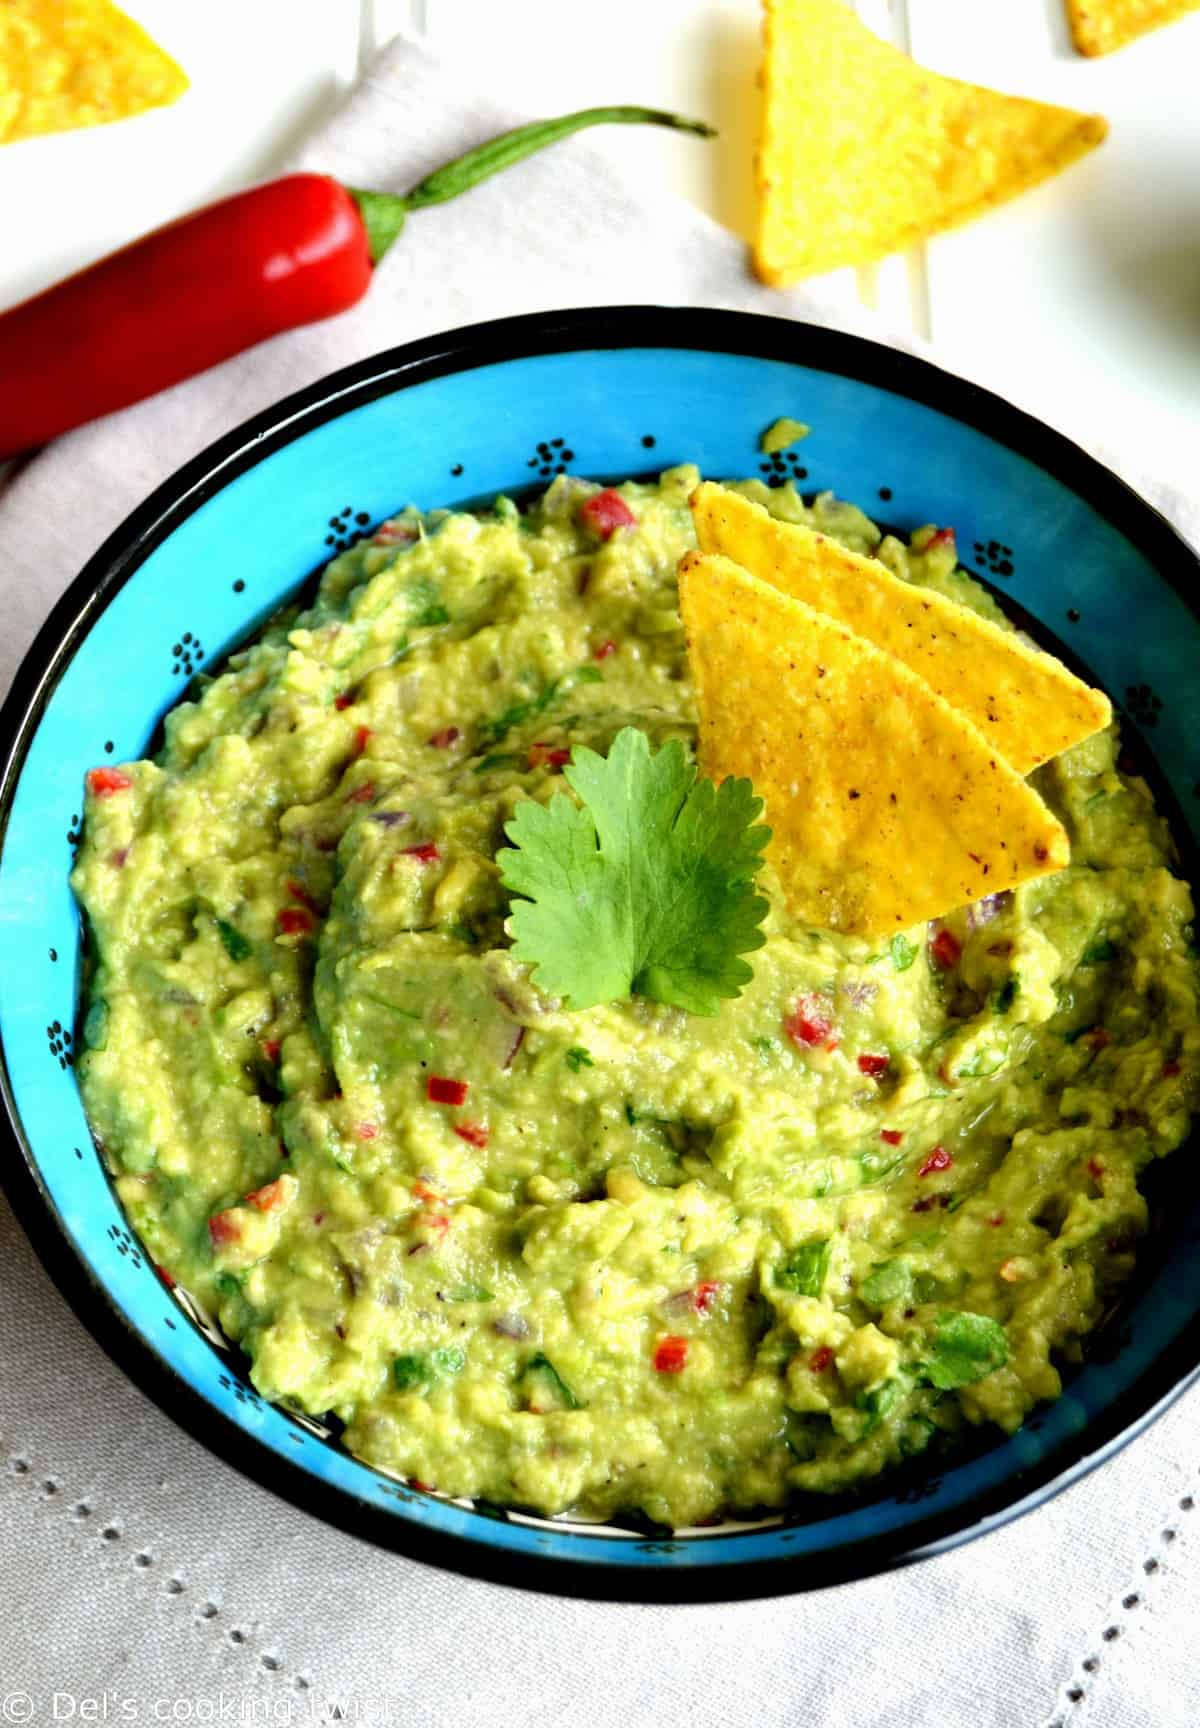 These 8 meatless Mexican-inspired recipes will be perfect for Cinco de Mayo or any Mexican party with friends.